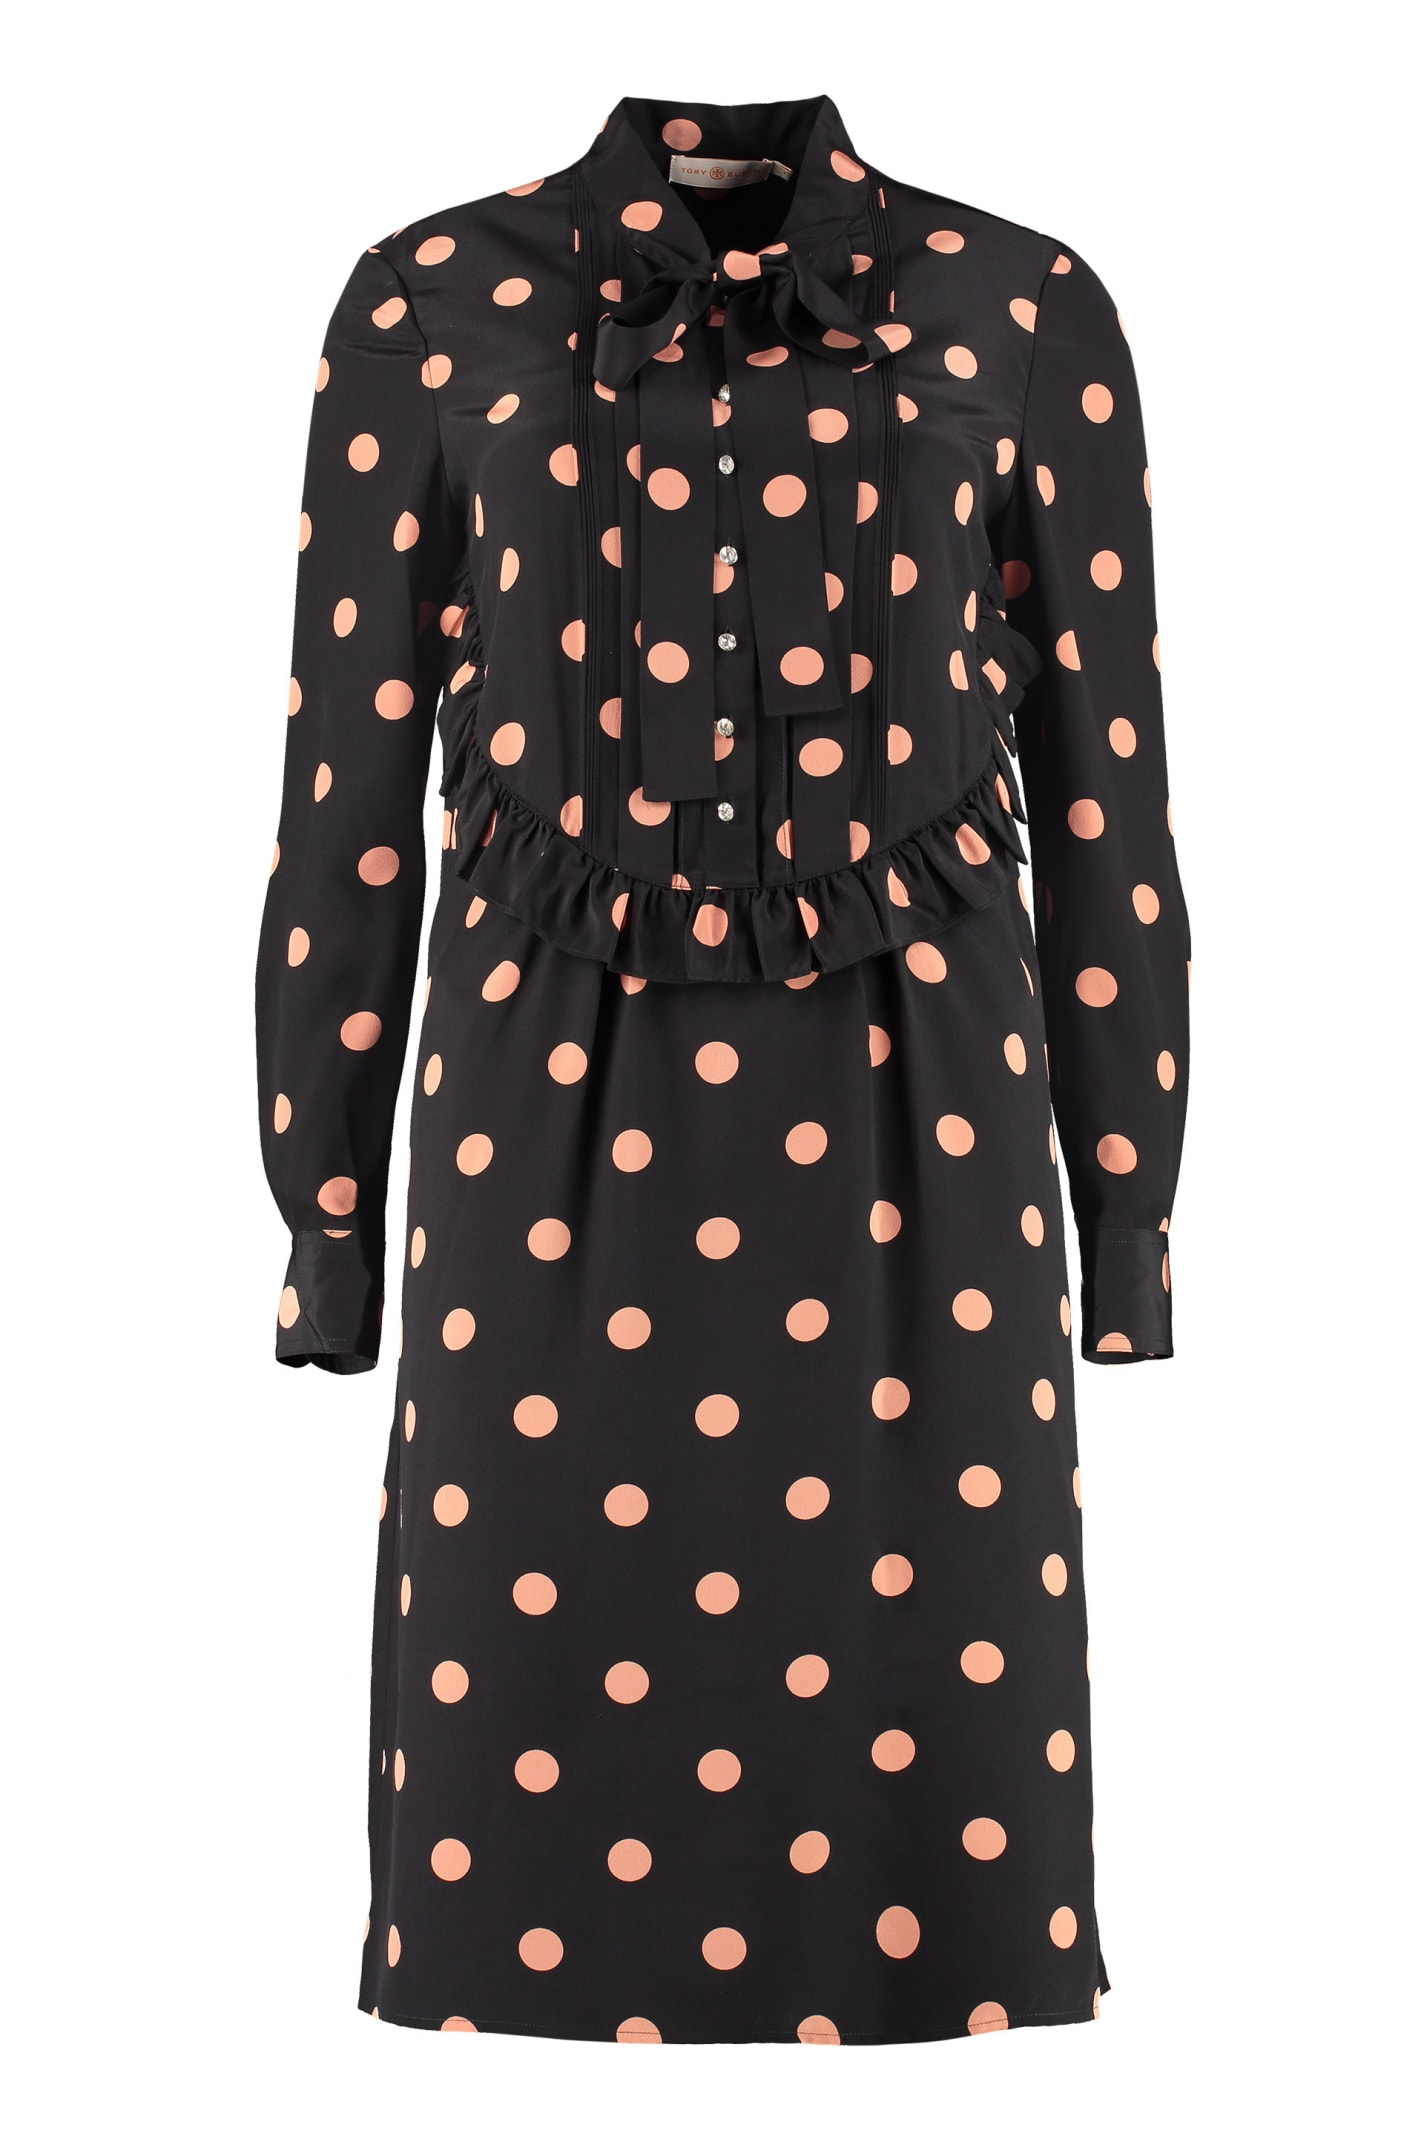 Buy Tory Burch Polka-dot Print Silk Mini Dress online, shop Tory Burch with free shipping